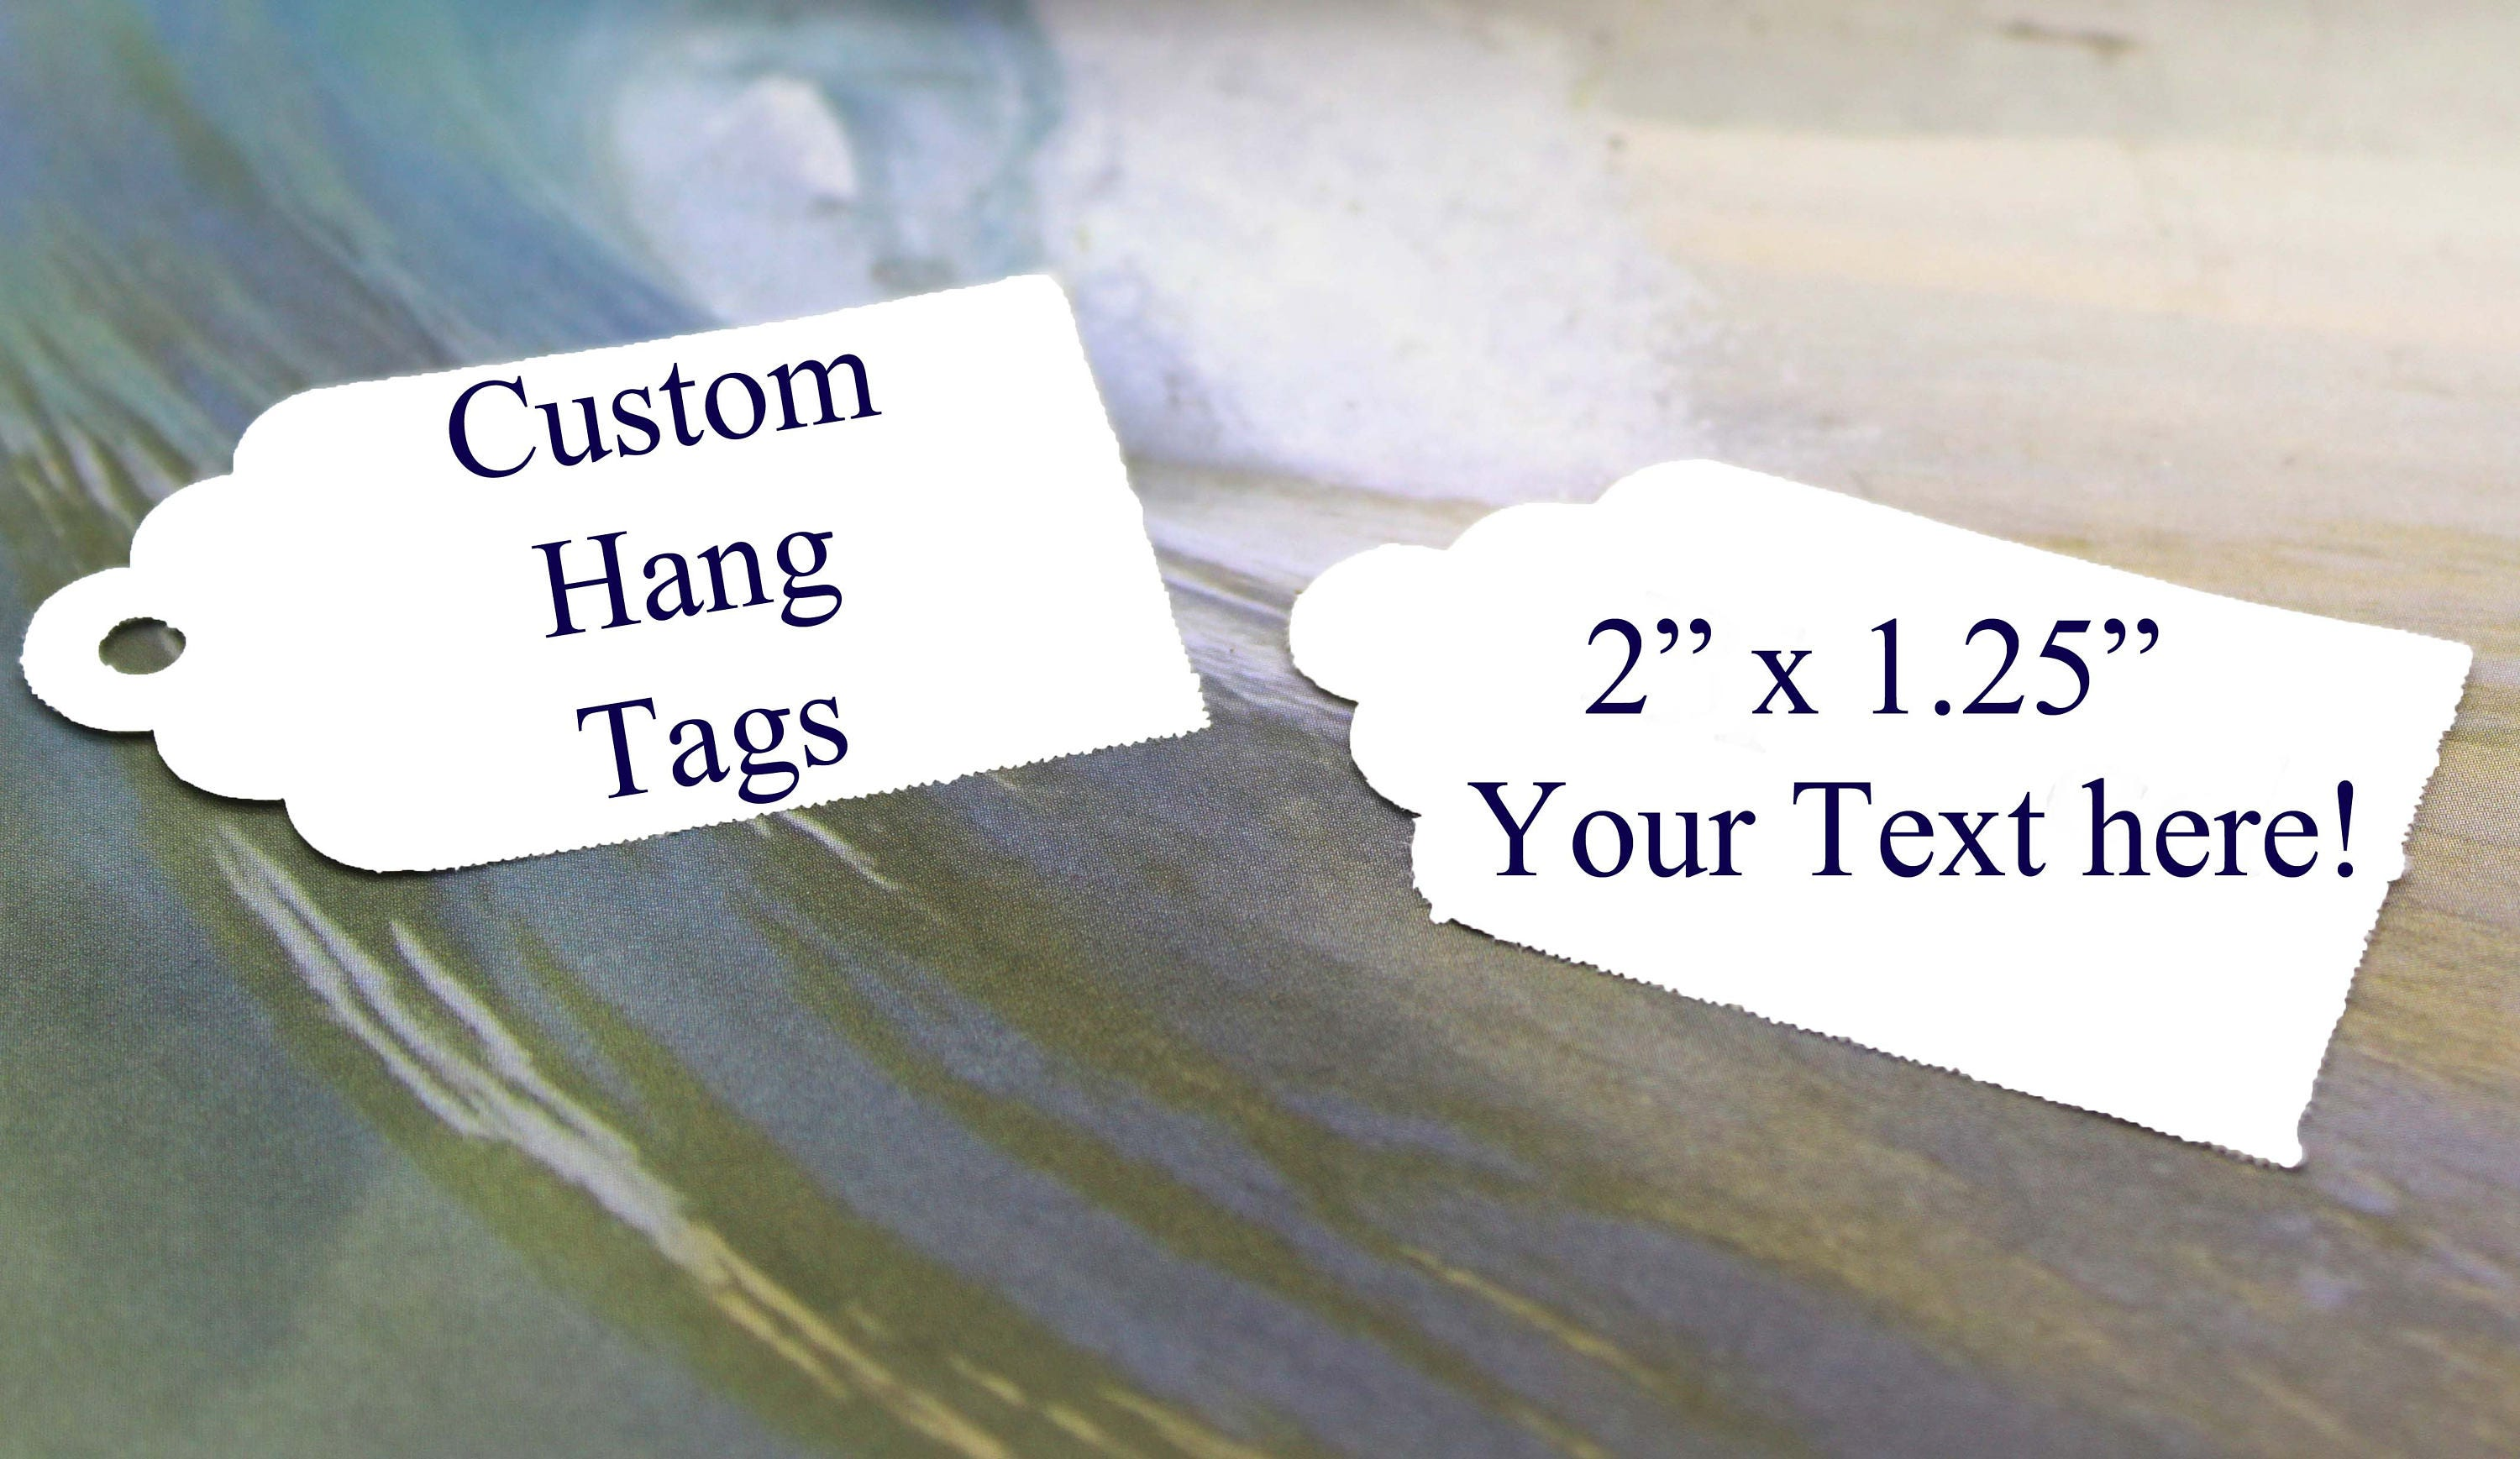 Custom Hang Tags Wedding Favor Tags Baby Shower Gift Tags